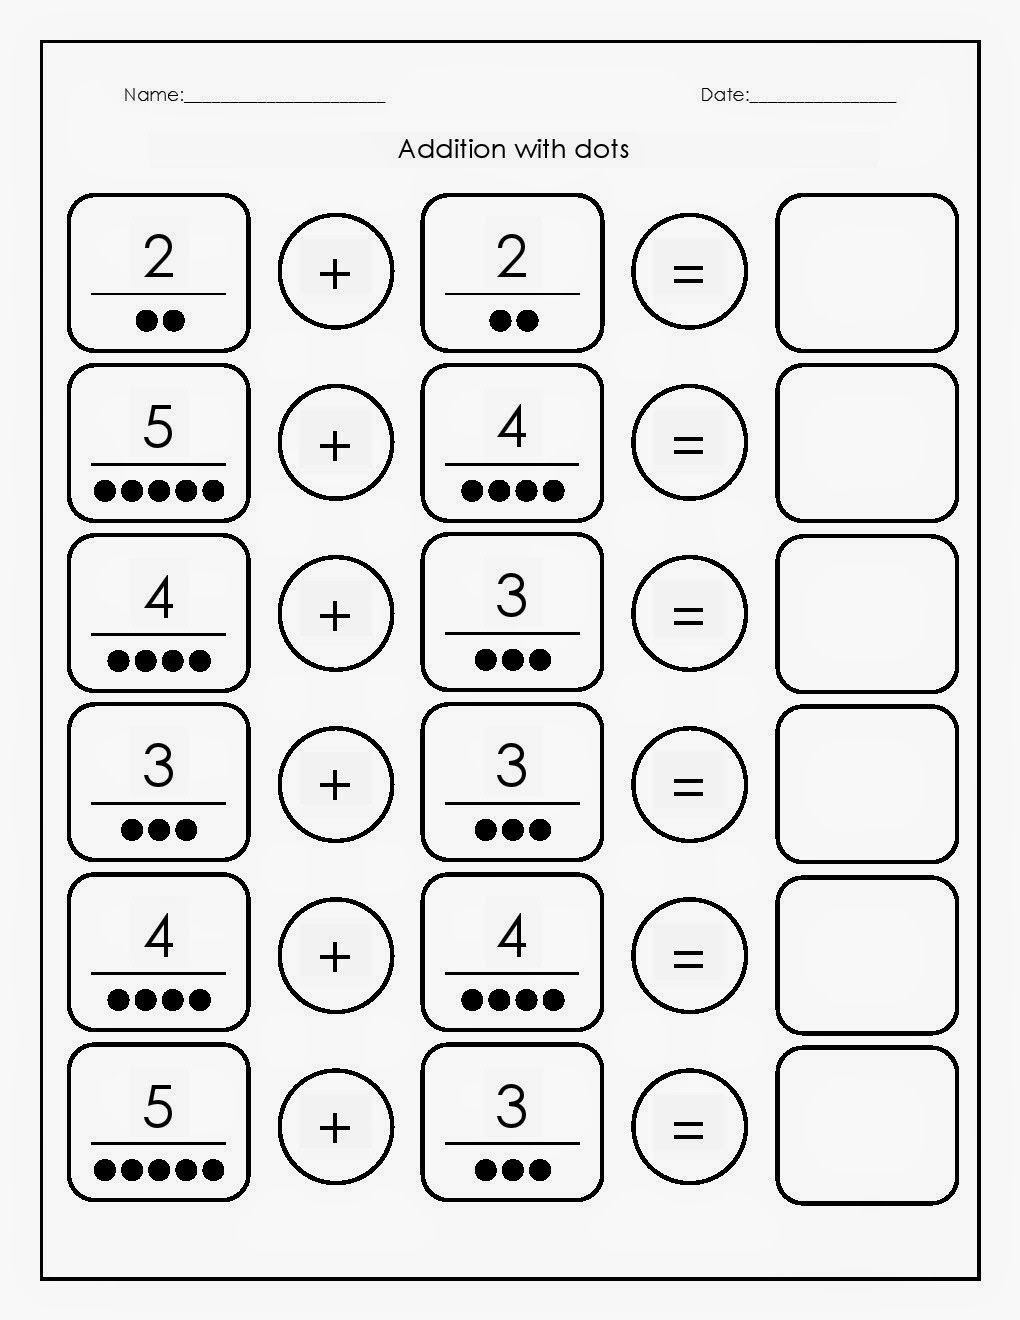 Maths Worksheets Addition with dots worksheets 2 (With